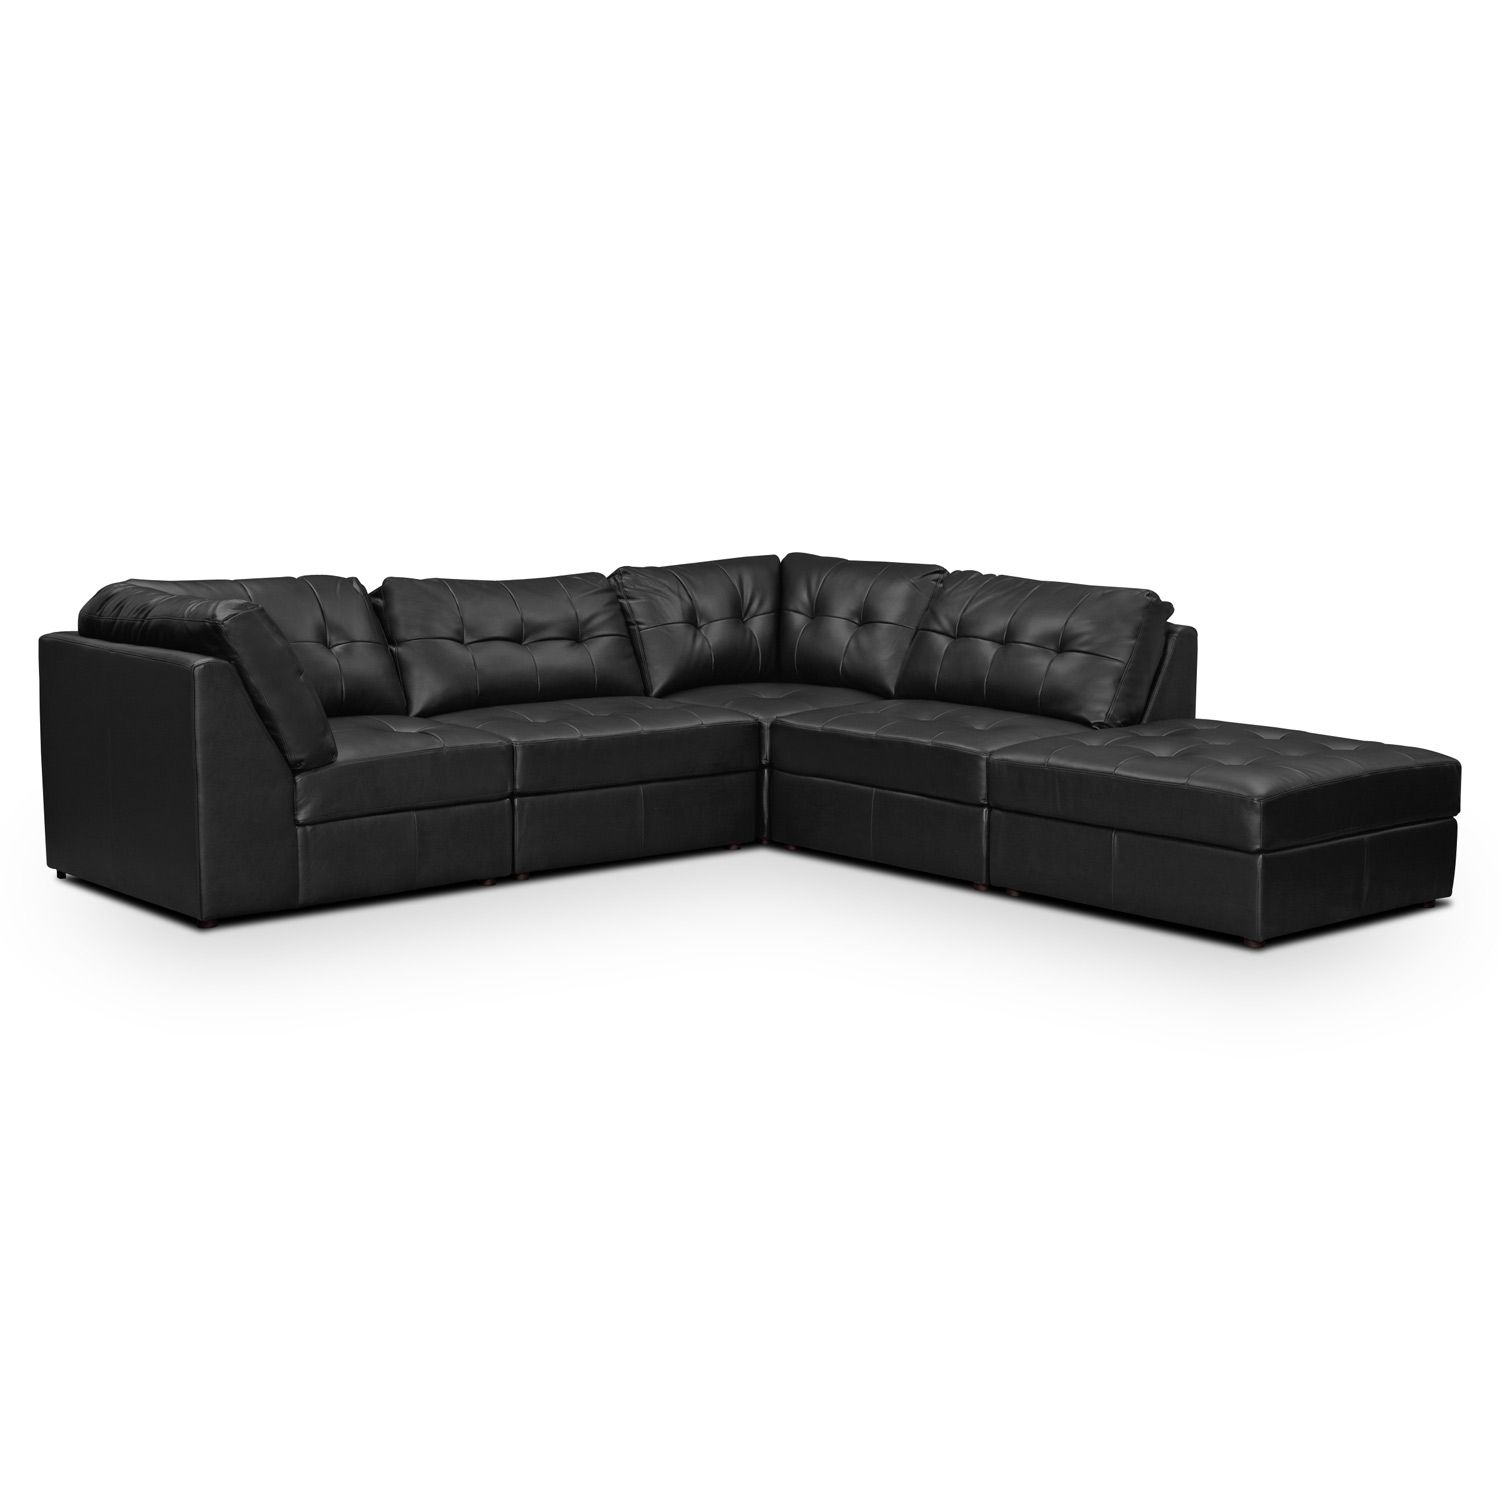 Nice Value City Sectional Sofa Good Value City Sectional Sofa 97 With Additional Sofa Design Ide Value City Furniture Living Room Leather Sectional Furniture